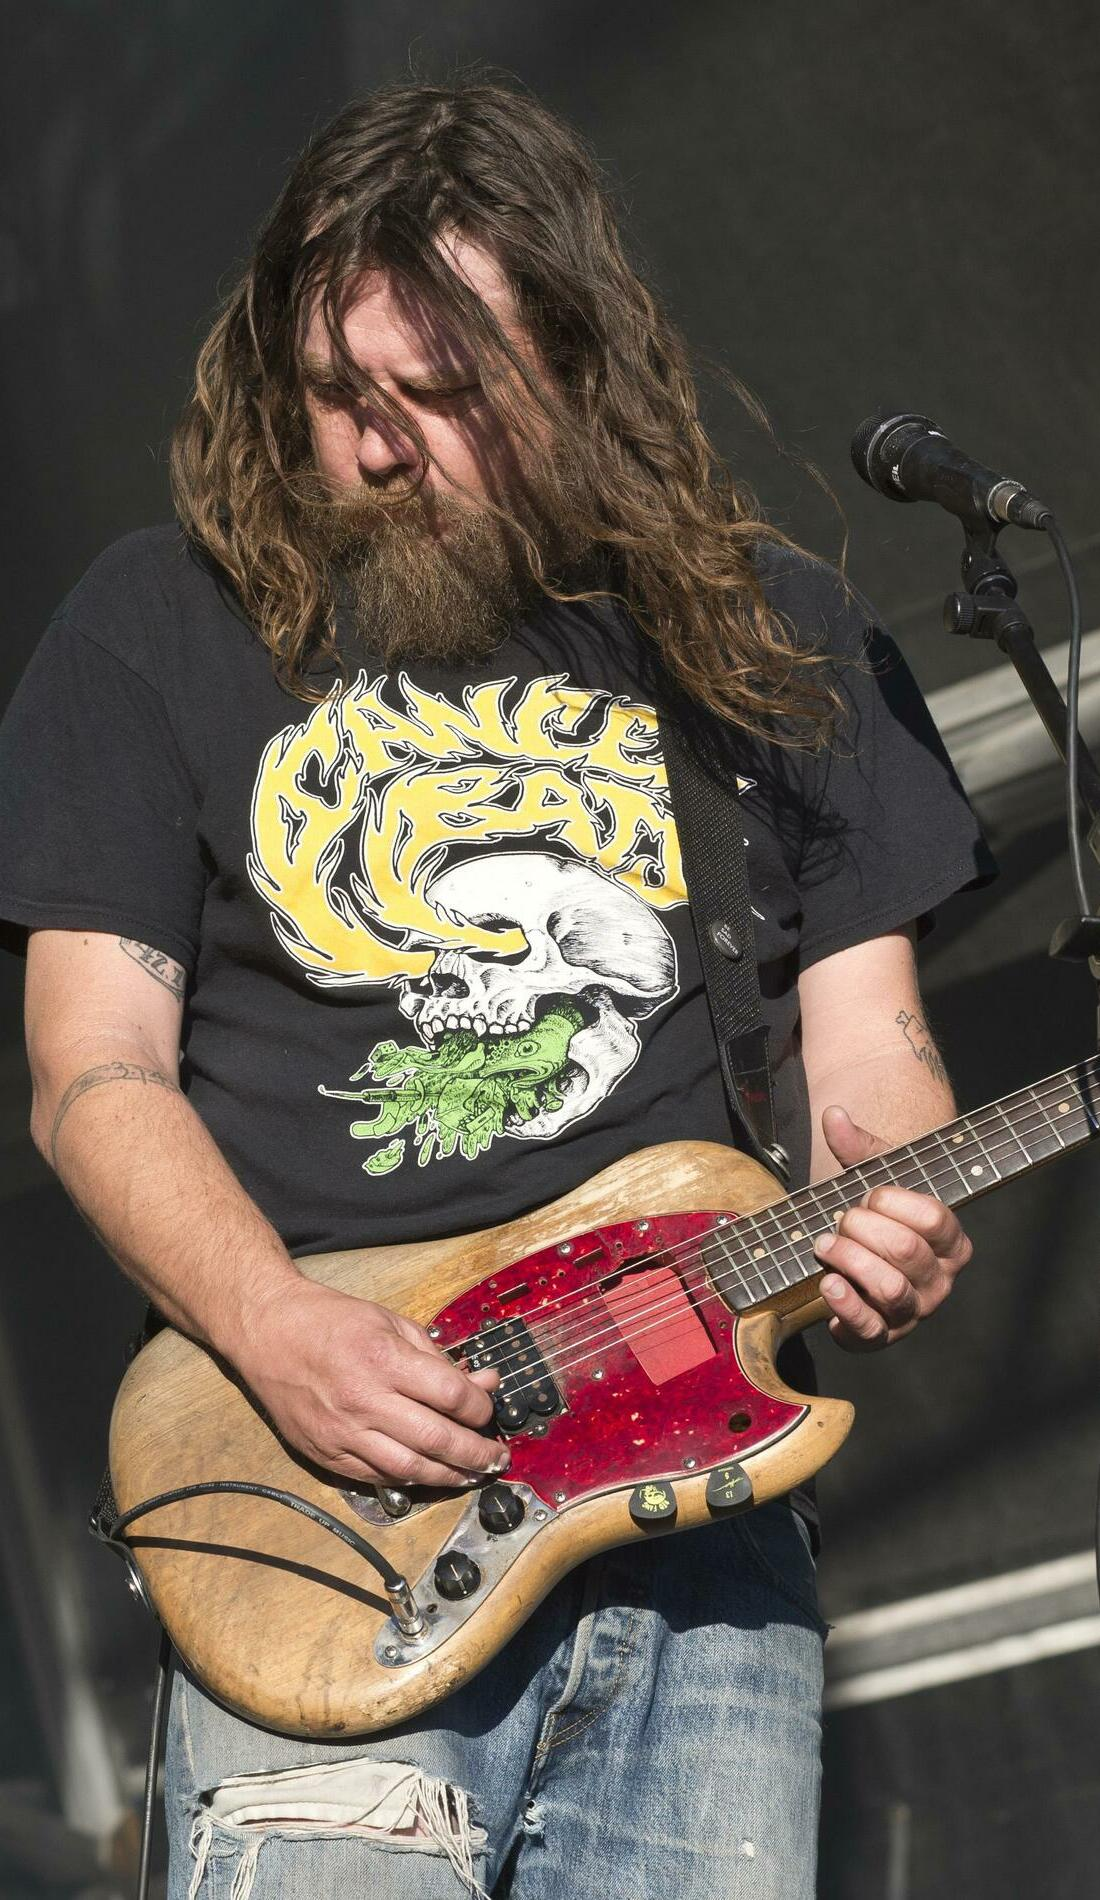 A Red Fang live event